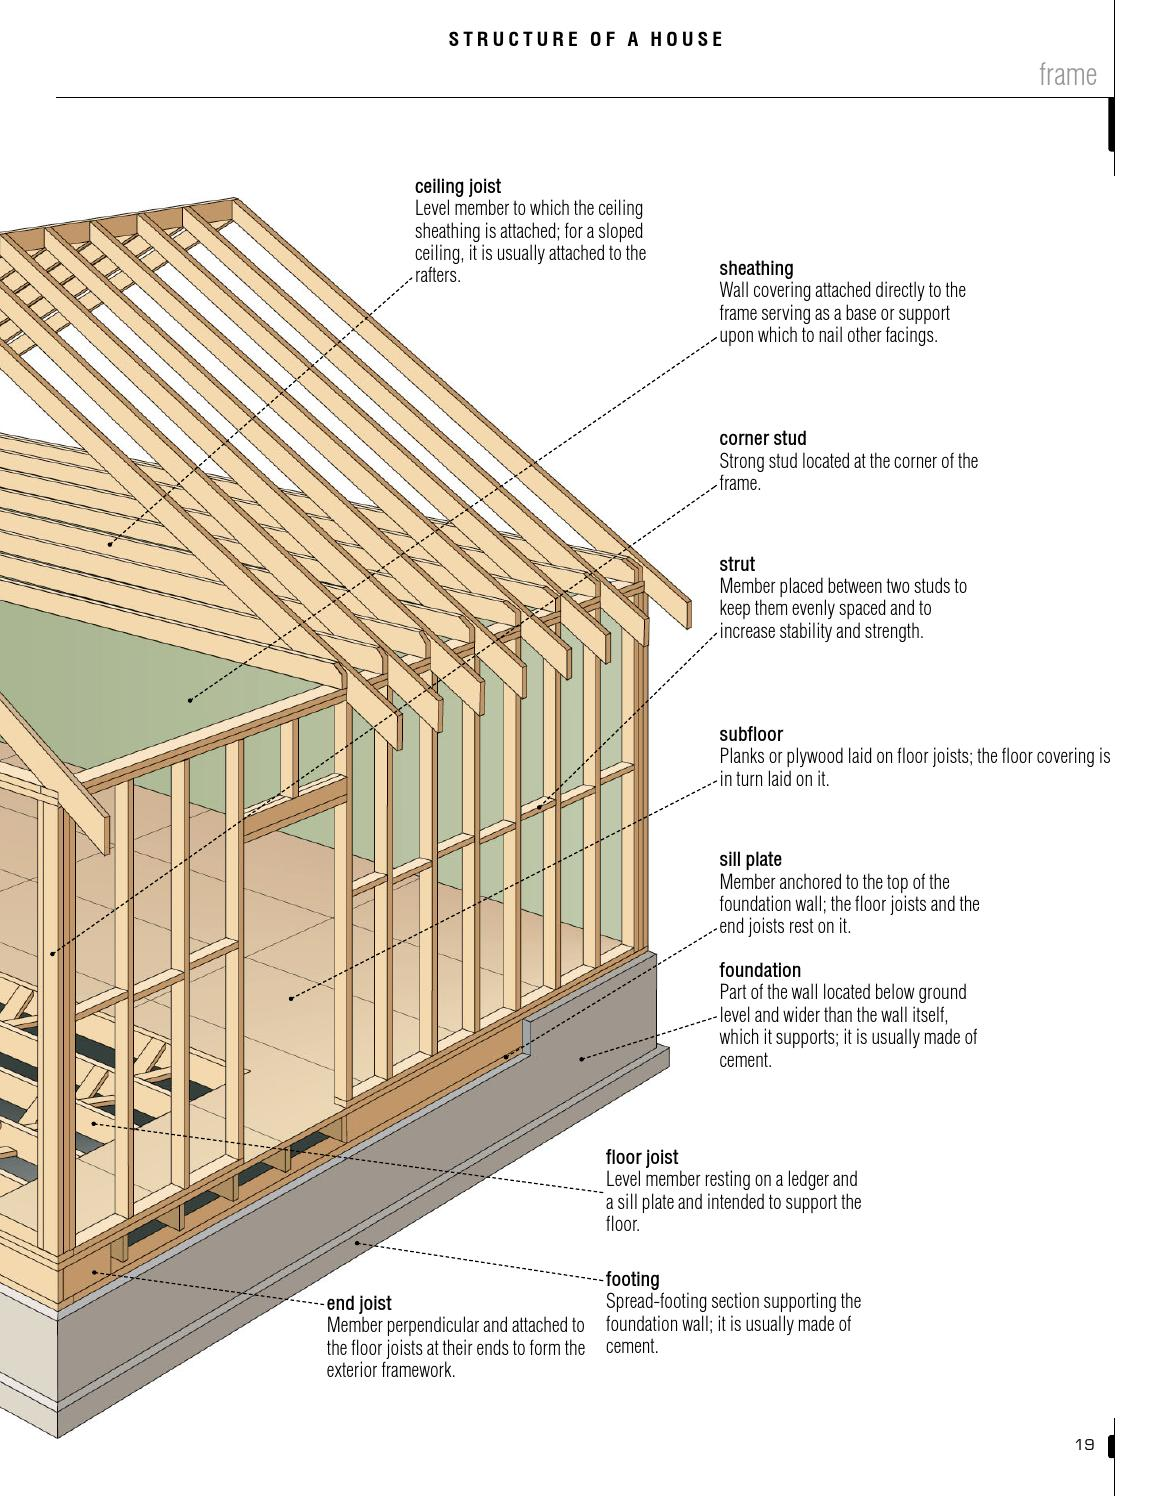 The Visual Dictionary of House & Do-It-Yourself: 6